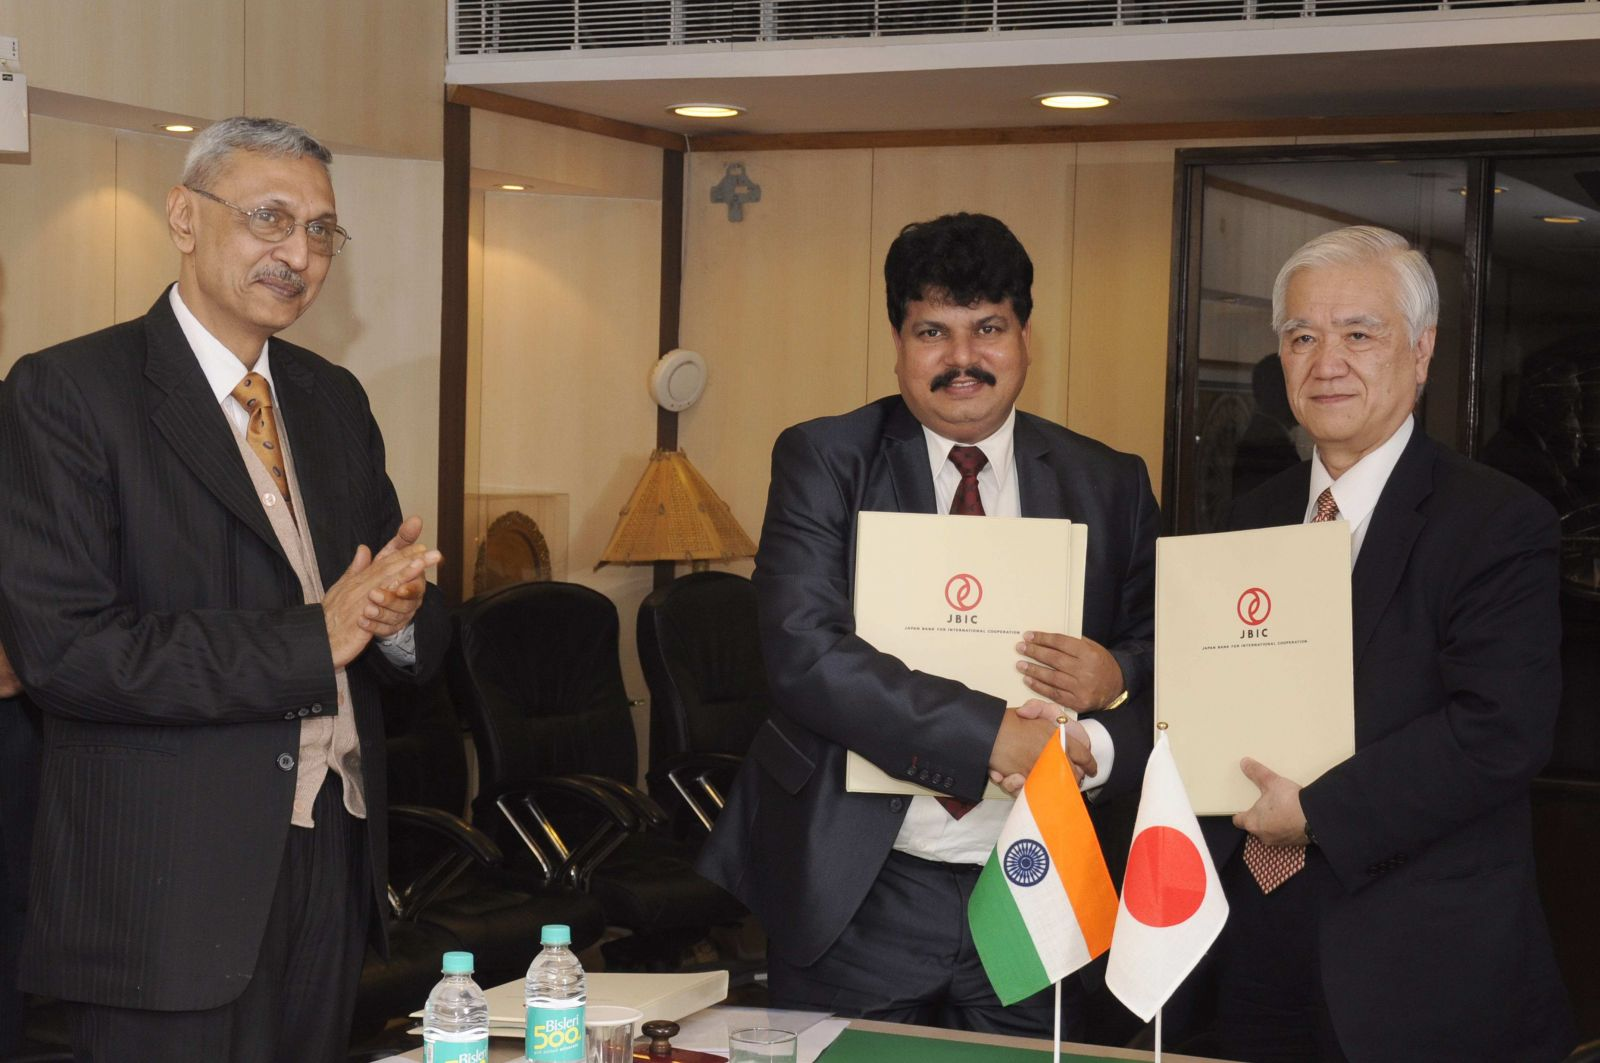 NTPC ties up with JBIC